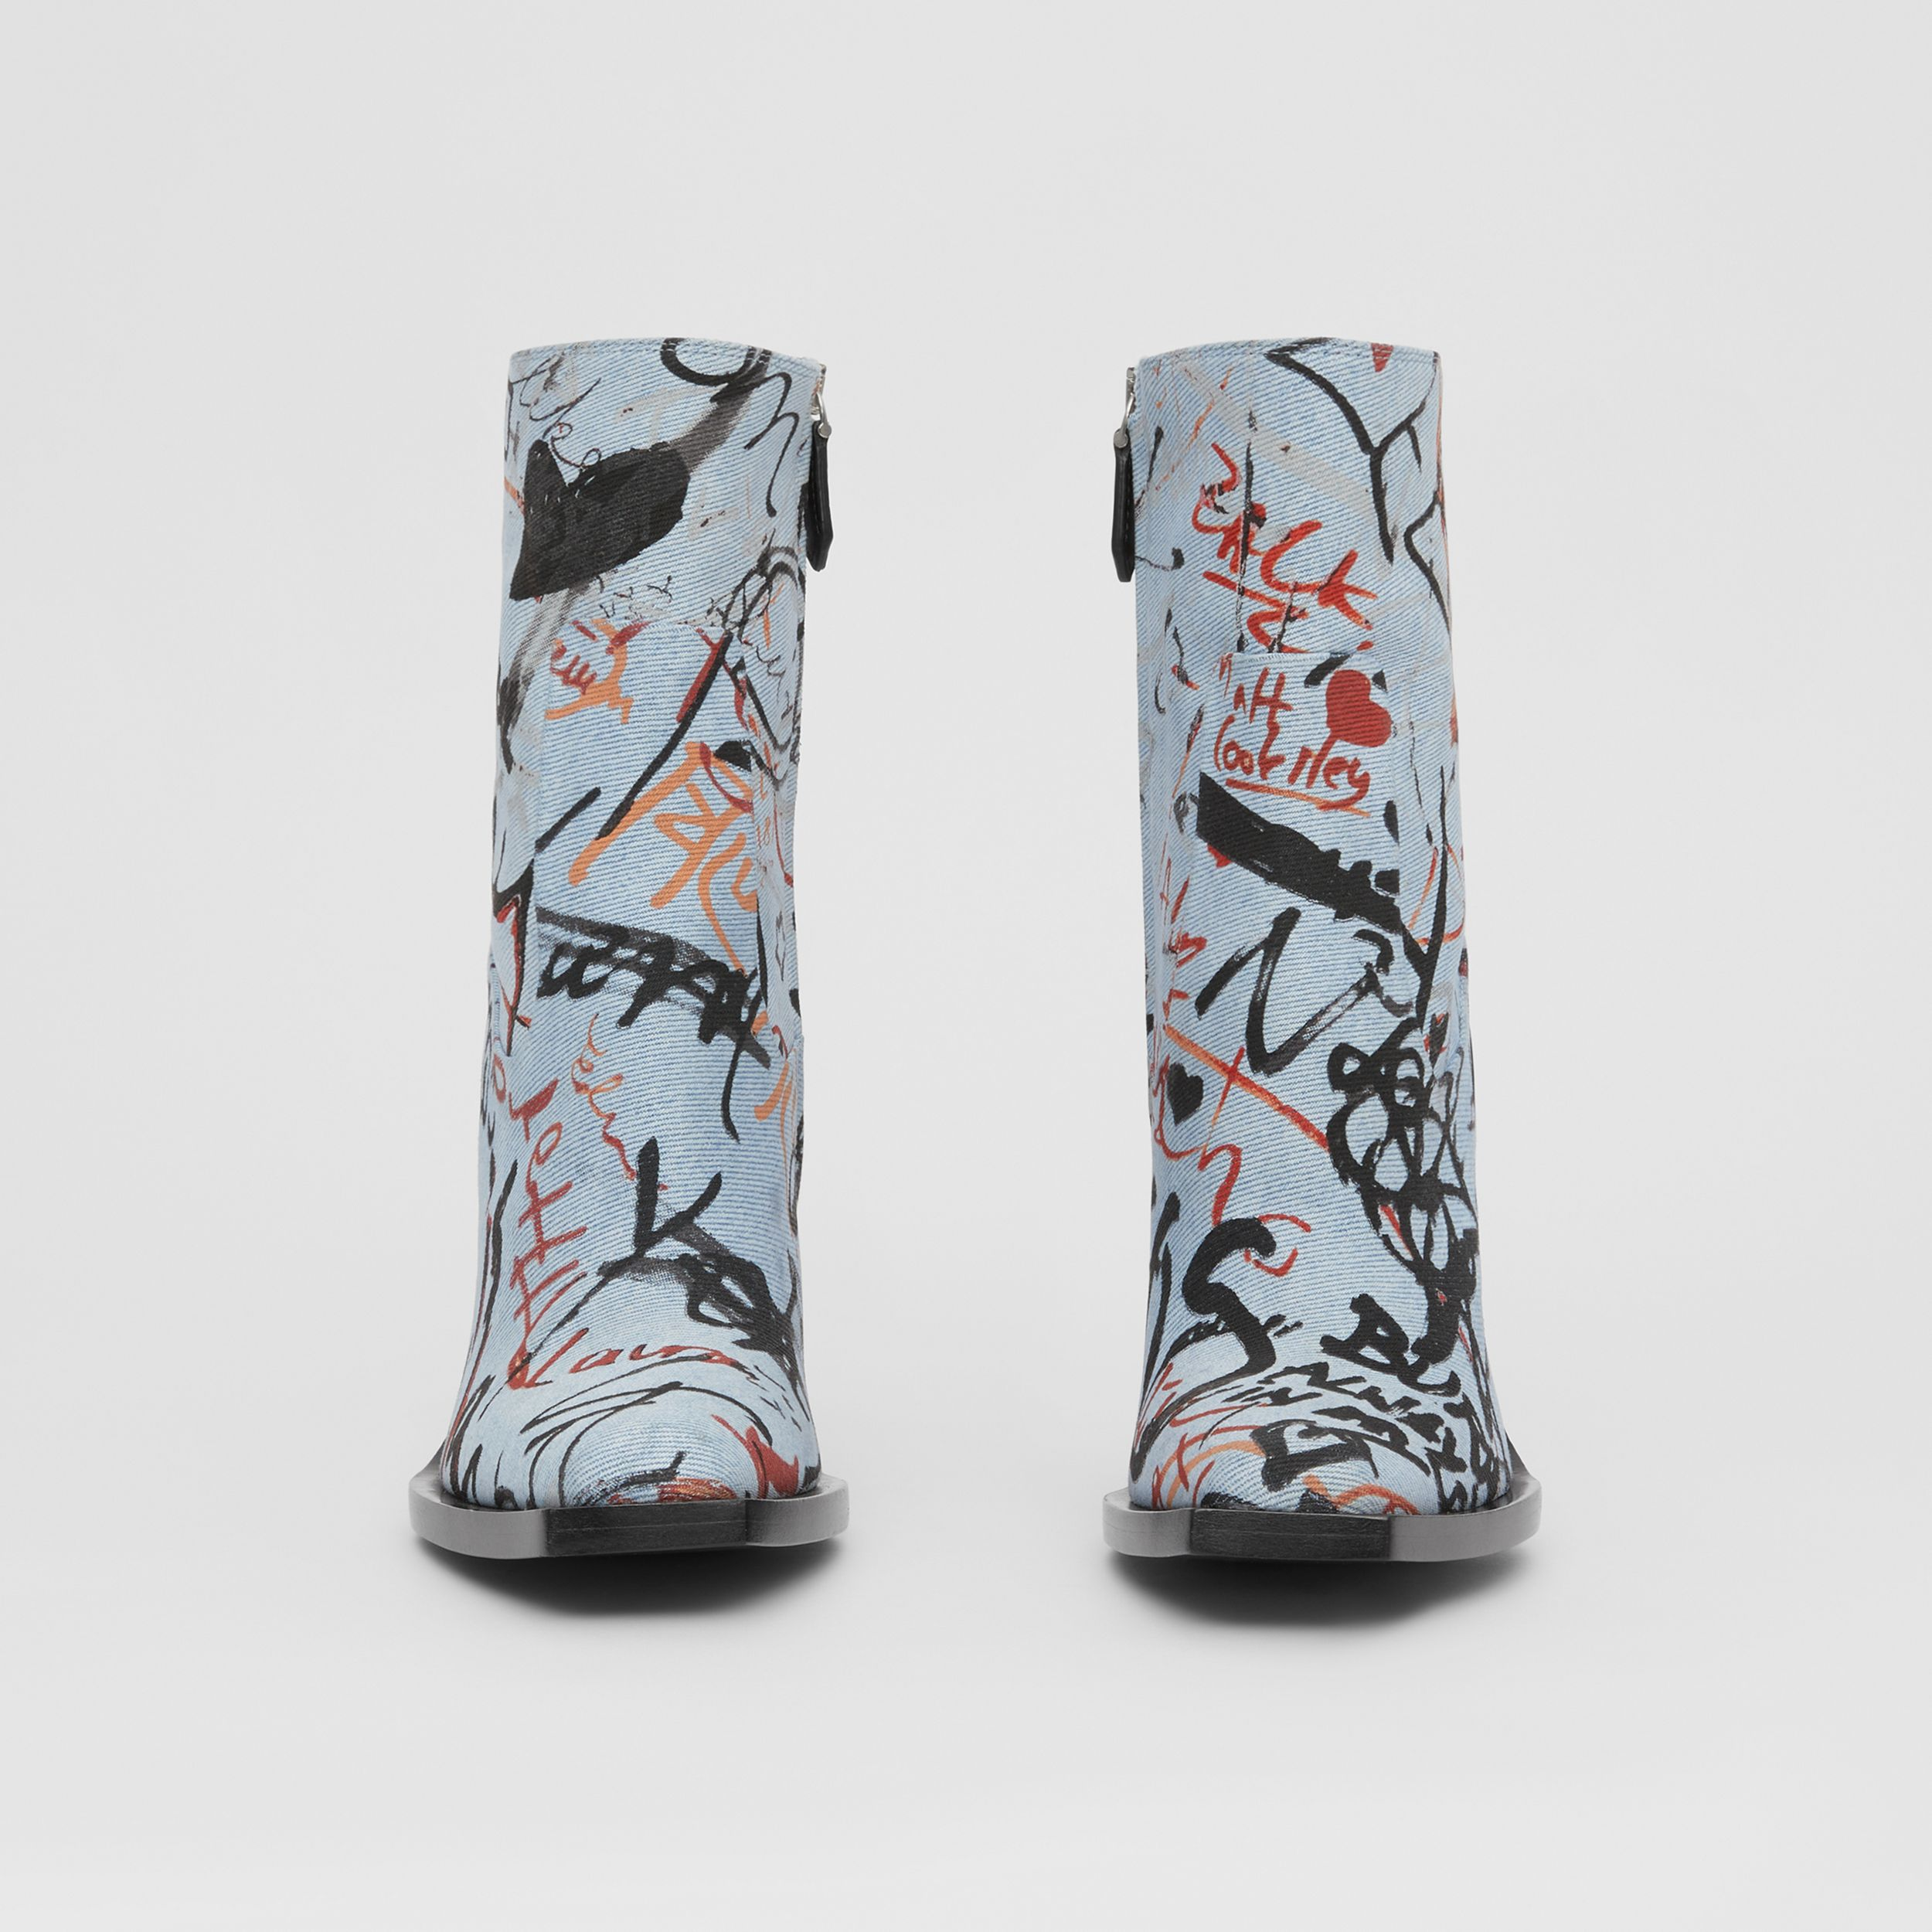 Graffiti Print Denim Block-heel Ankle Boots in Multicolour - Women | Burberry Hong Kong S.A.R. - 3